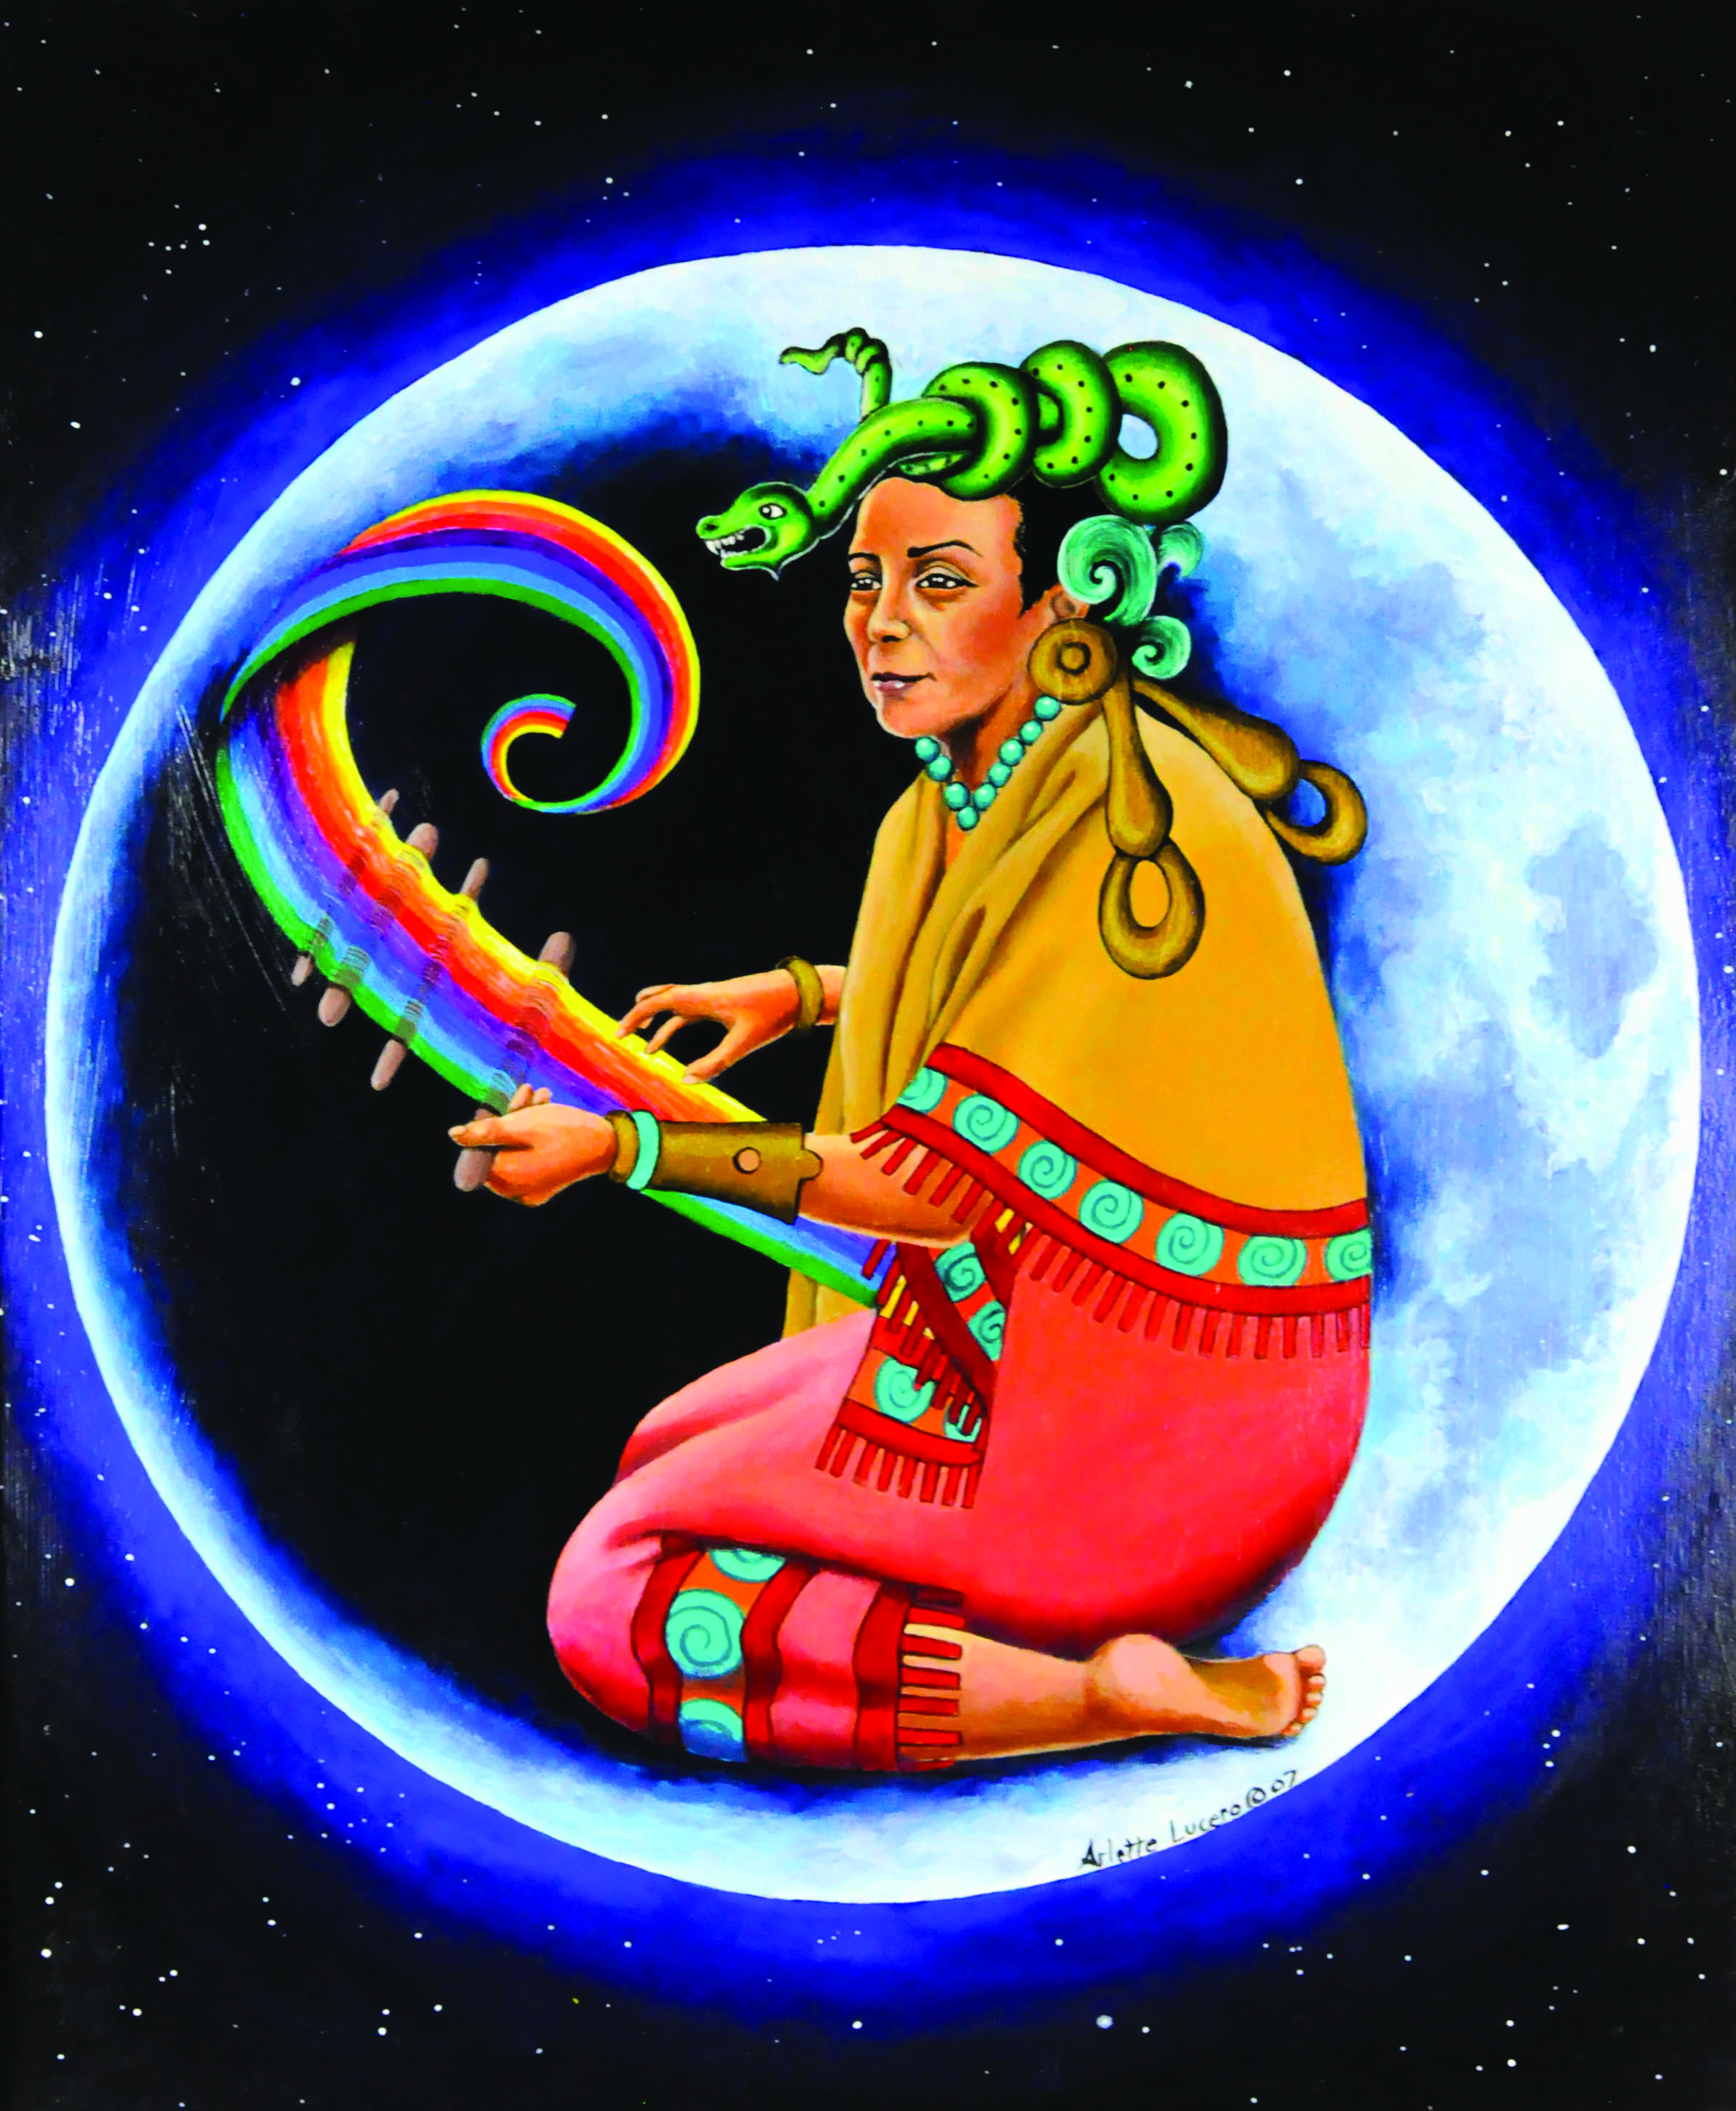 Image of a painting by artist Arlette Lucero. The painting depicts the moon, illuminated among the stars in a night sky. On the face of the moon is a woman with colorful traditional clothing. she is holding a rainbow in her hands, and a snake sits coiled on the top of her head.